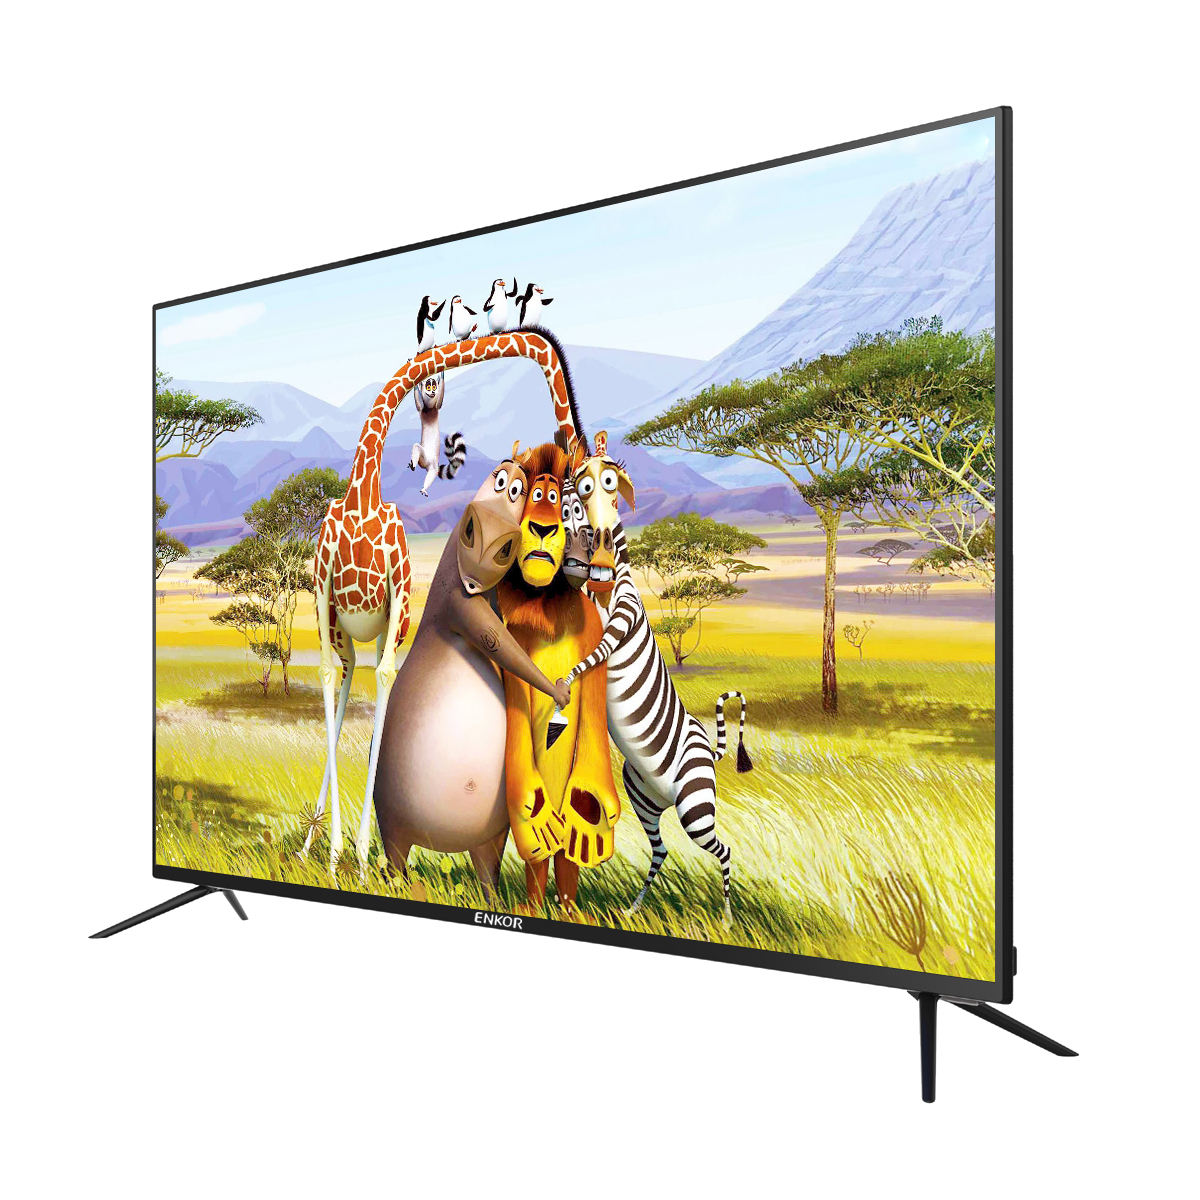 Tela de tv led plasma de 50 polegadas 4 k smart tv